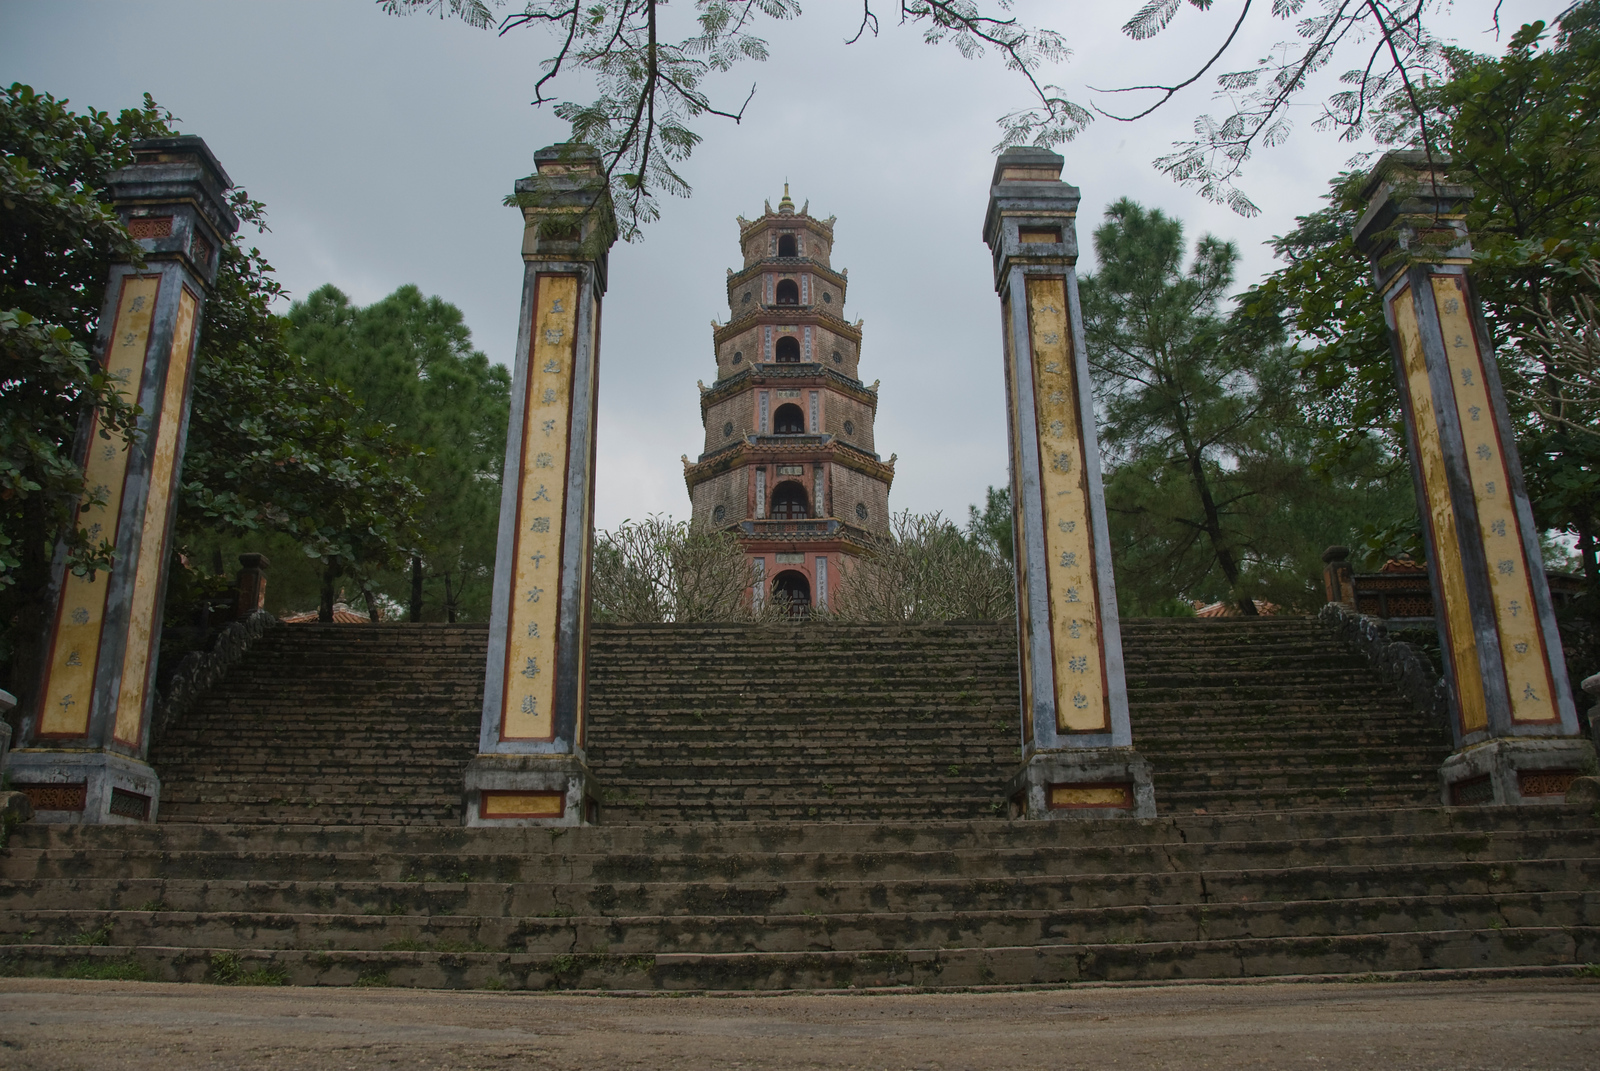 Complex of Hué Monuments - UNESCO World Heritage Site, Vietnam